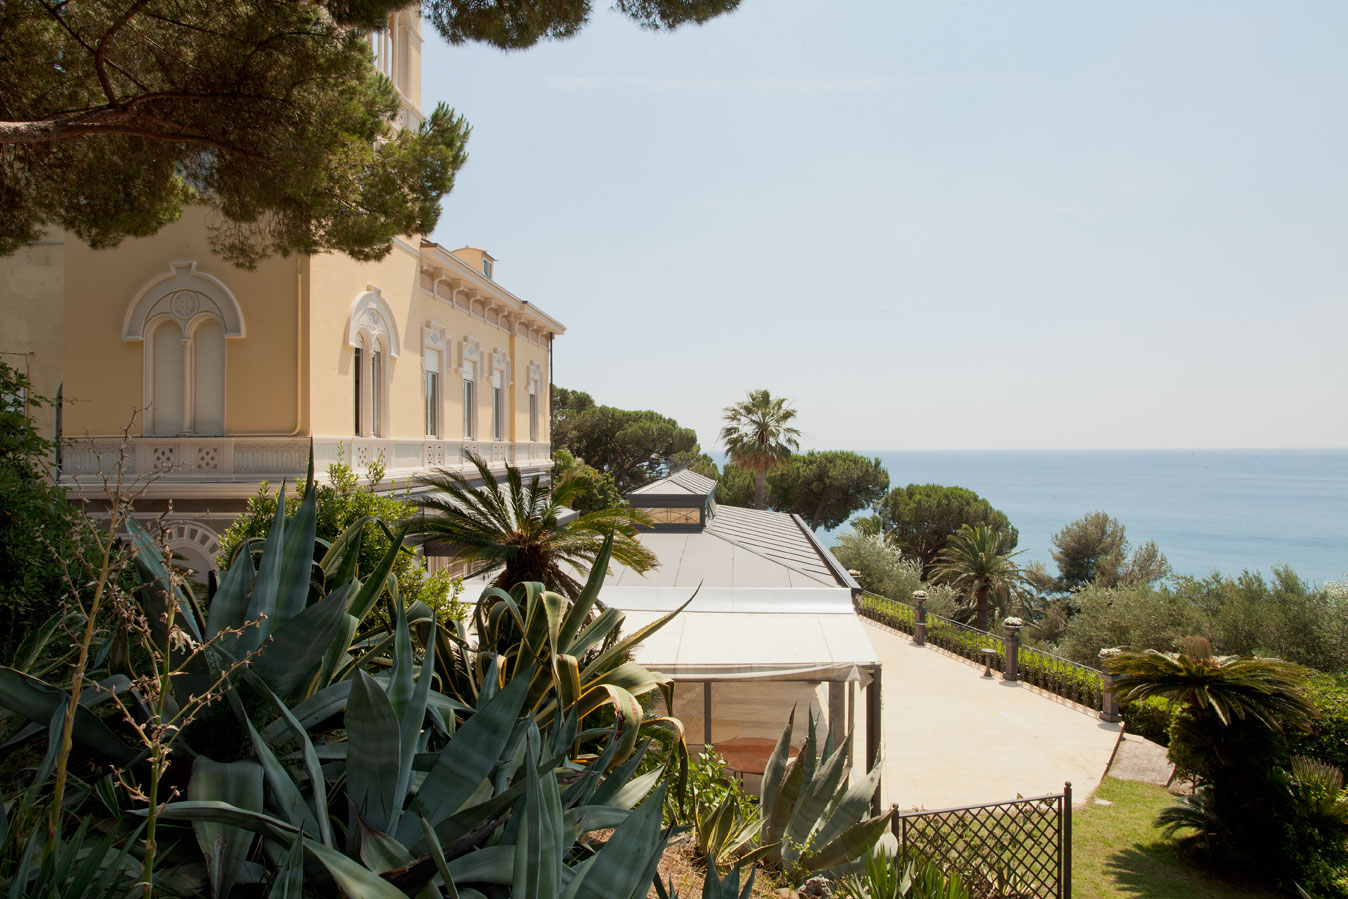 단독 가정 주택 용 매매 에 Art Nouveau villa overlooking the italian Riviera Celle Ligure Celle Ligure, Savona, 17015 Liguria, 이탈리아